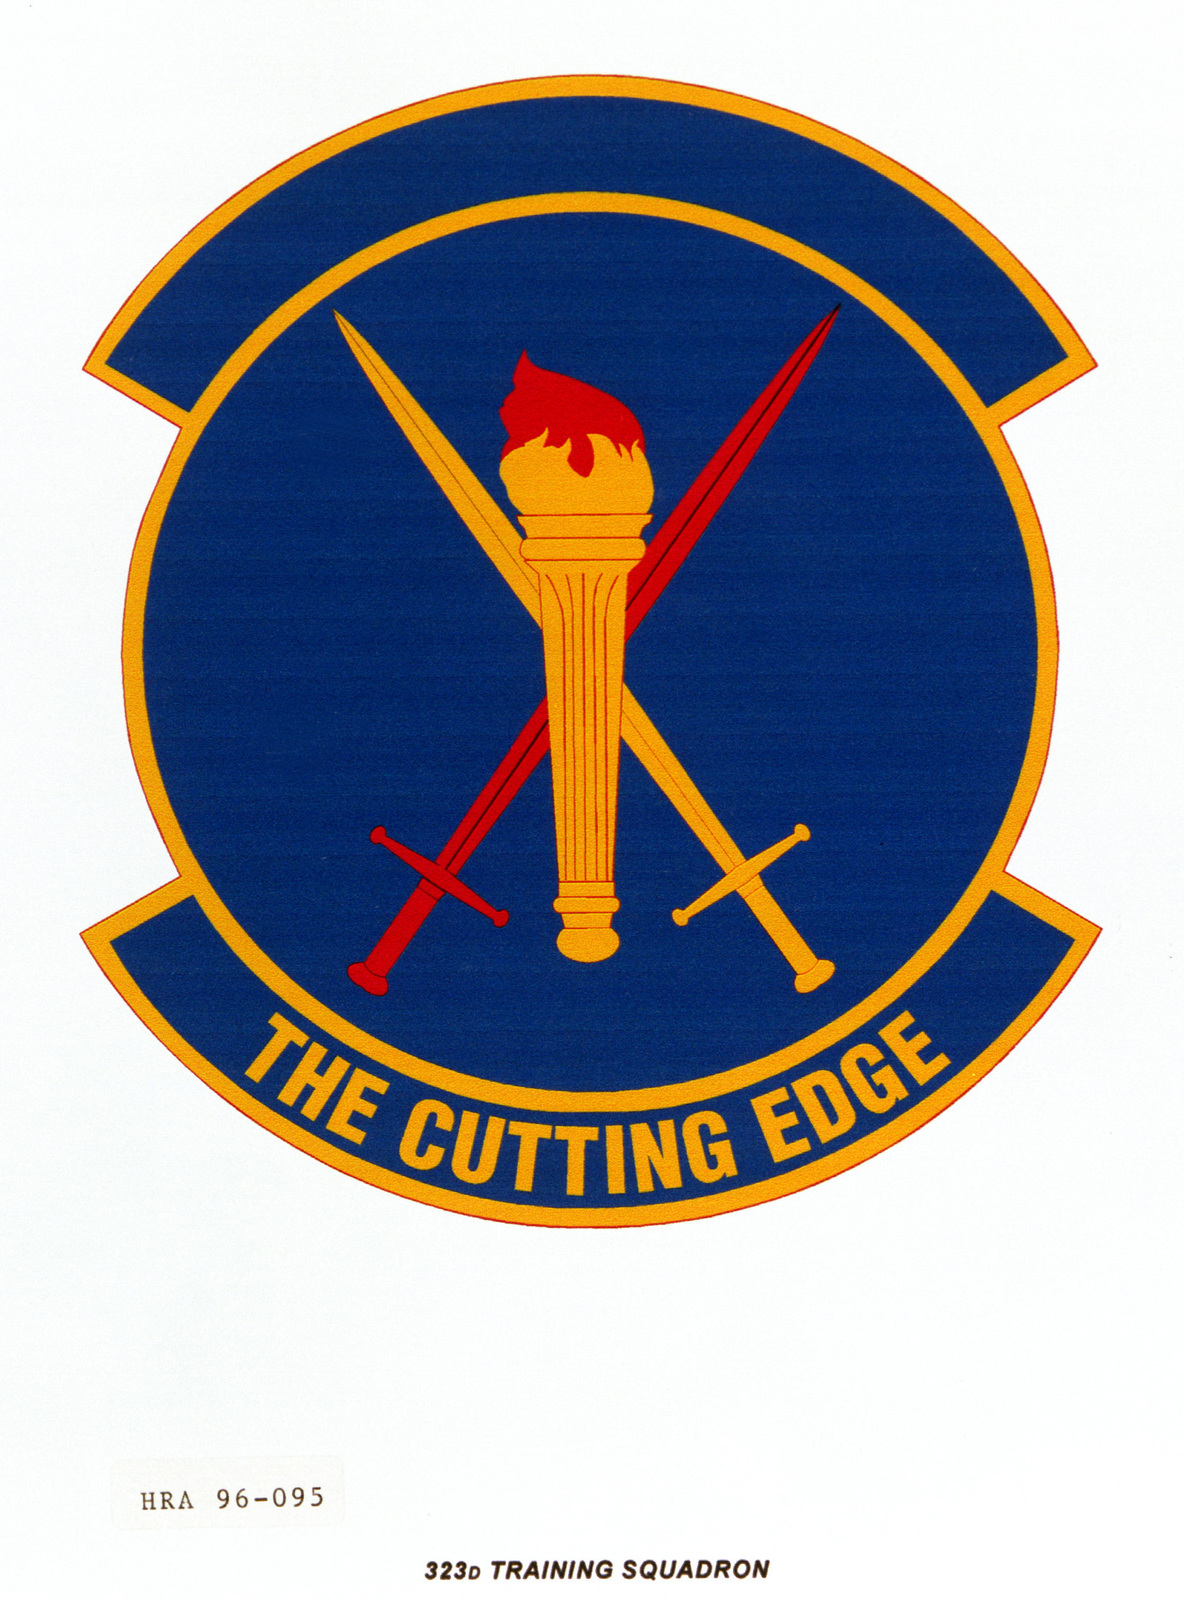 Air Force Organizational Emblem. 323rd Training Squadron Exact Date Shot Unknown